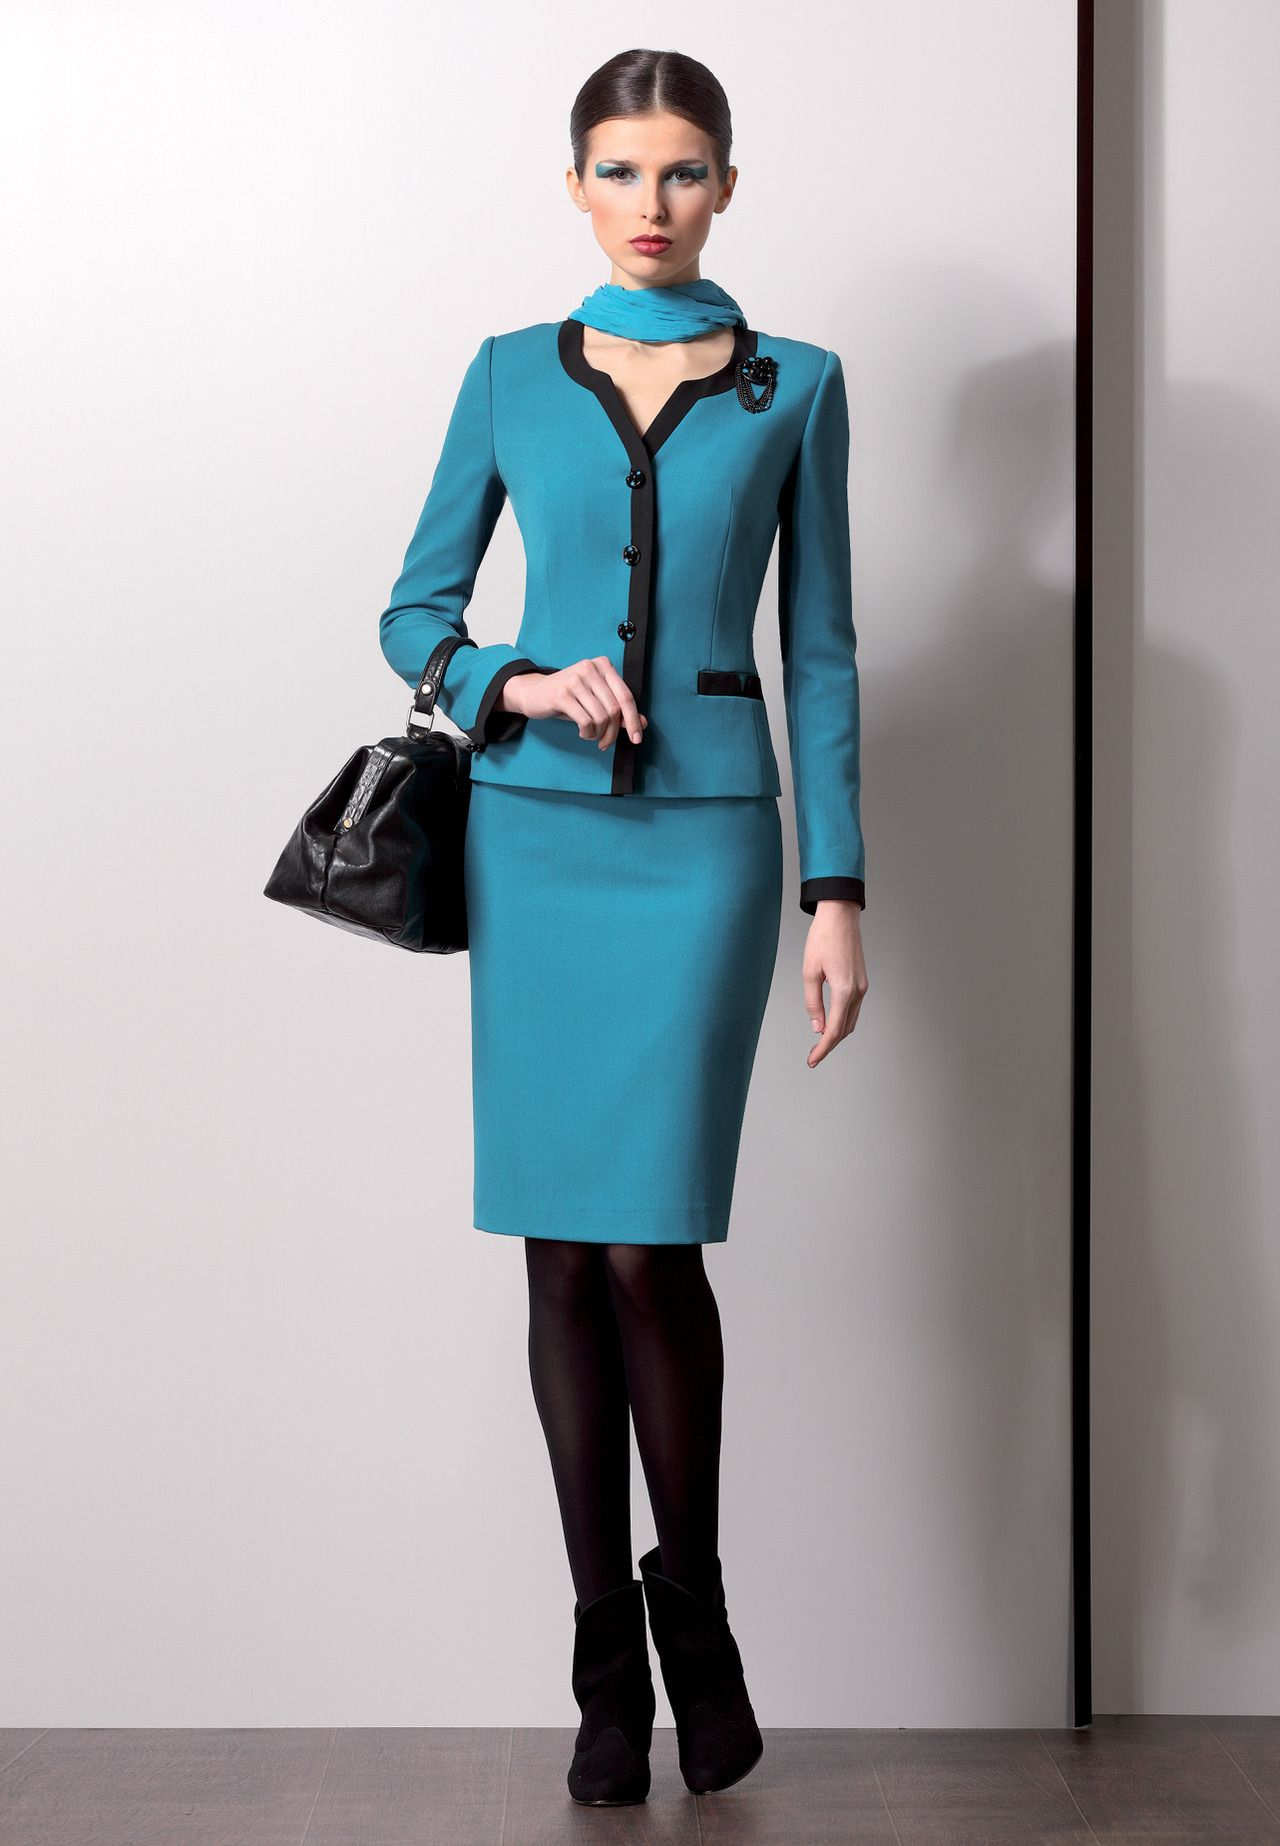 modern women working suits - Google Search | Work Suits ...